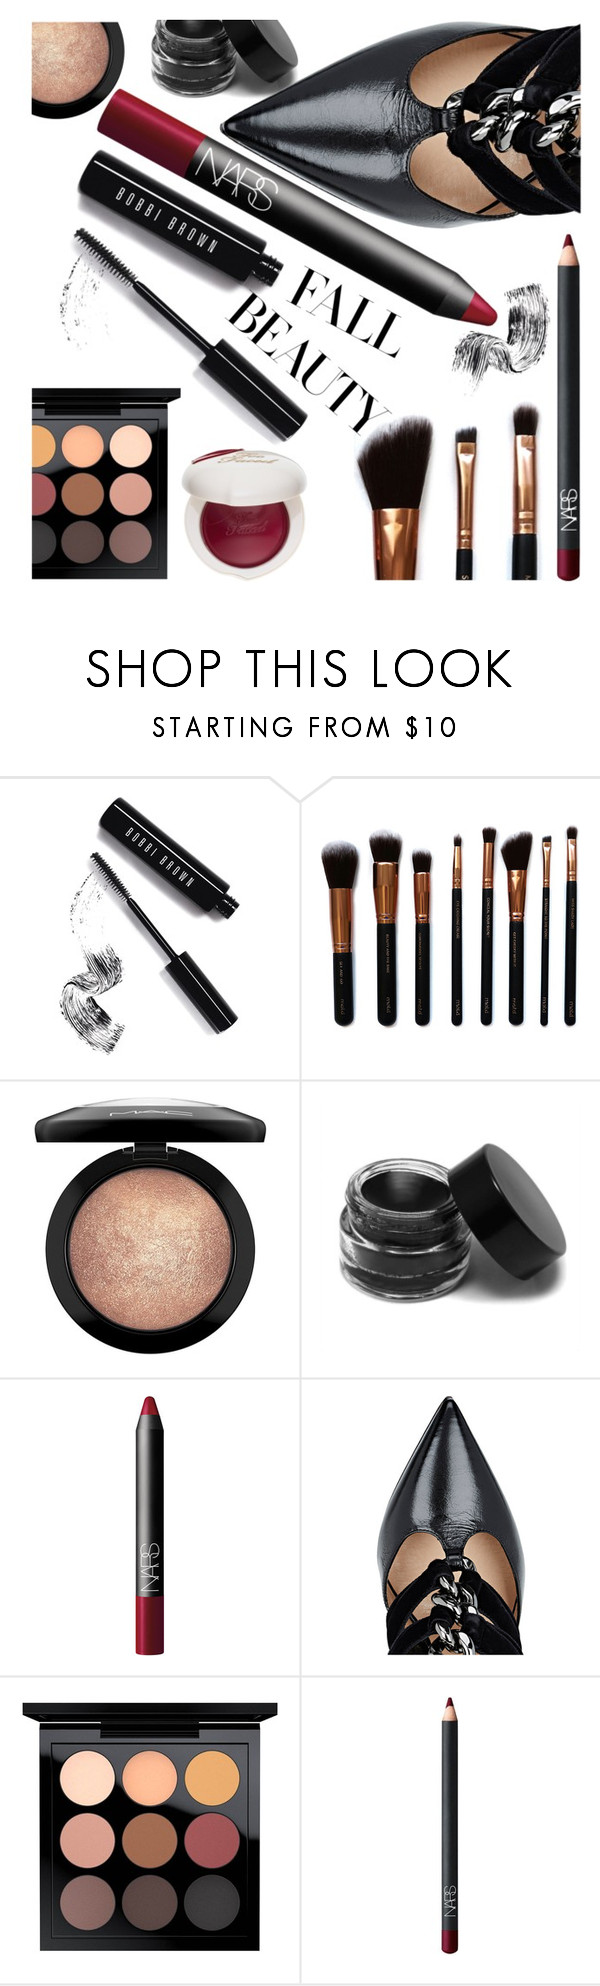 """Untitled #66"" by cndystrpd ❤ liked on Polyvore featuring beauty, Bobbi Brown Cosmetics, M.O.T.D Cosmetics, MAC Cosmetics, NARS Cosmetics, Valentino, Too Faced Cosmetics, Beauty, contestentry and polyvoreeditorial"